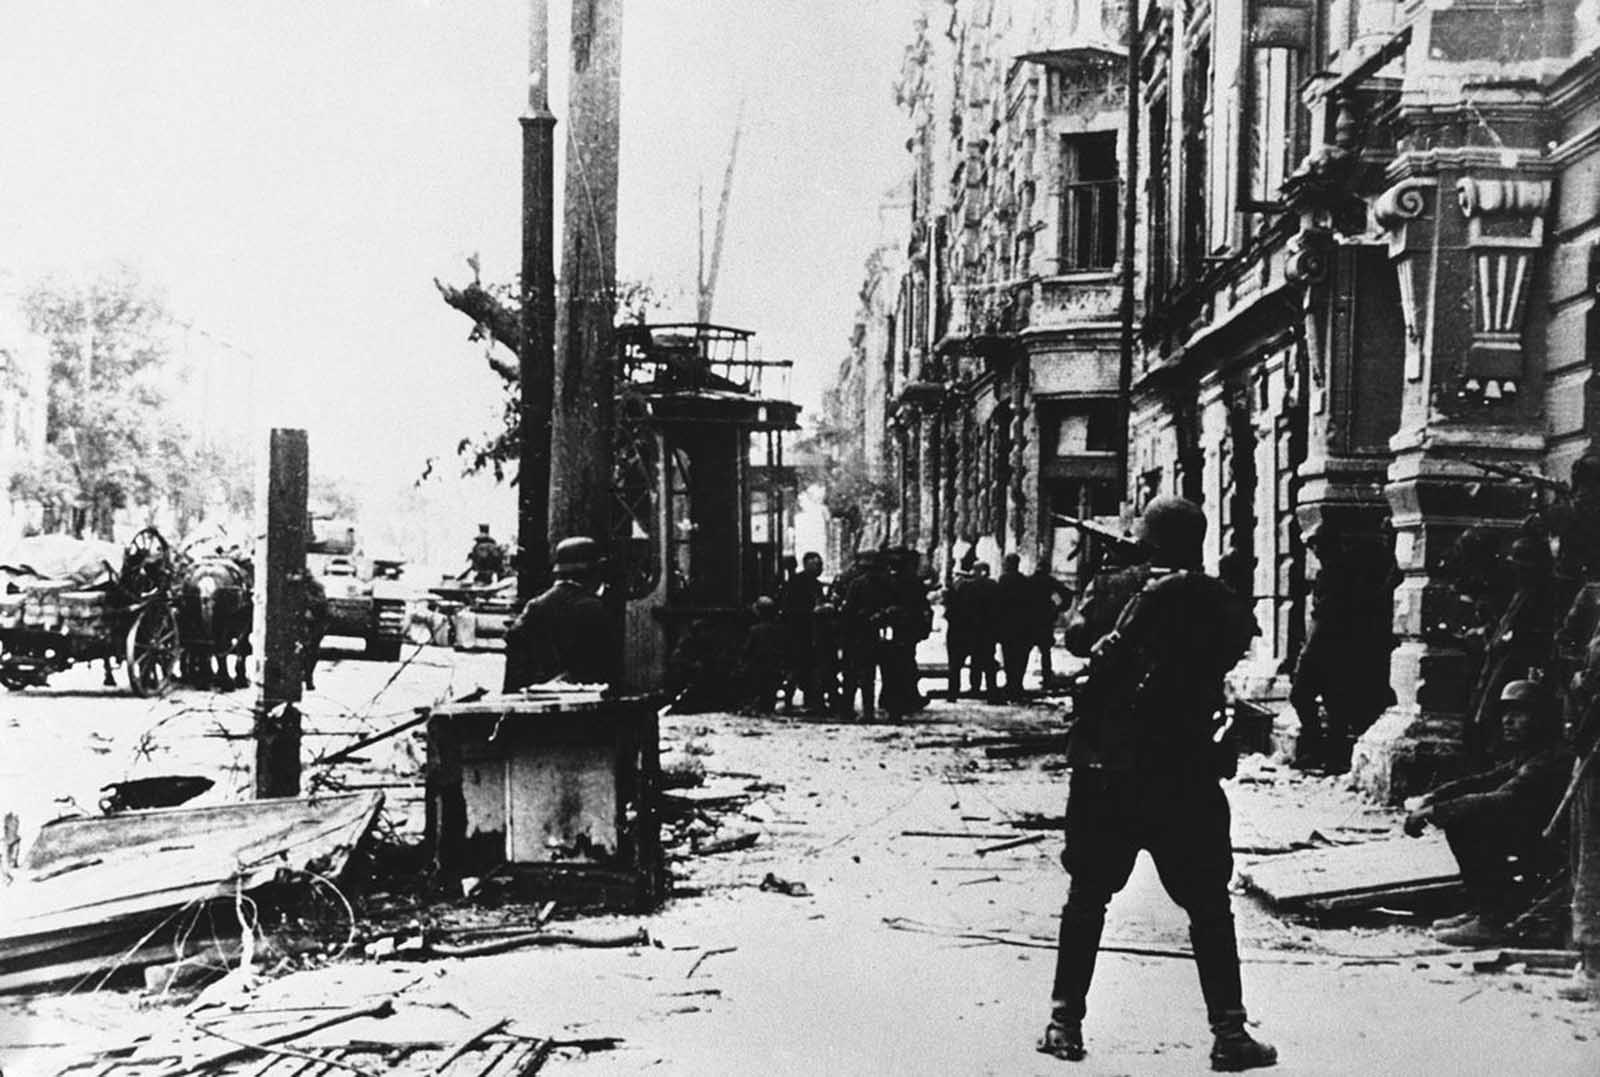 Evidence of the bitter street fighting which took place during the occupation of Rostov, Russia by German forces in August of 1942.